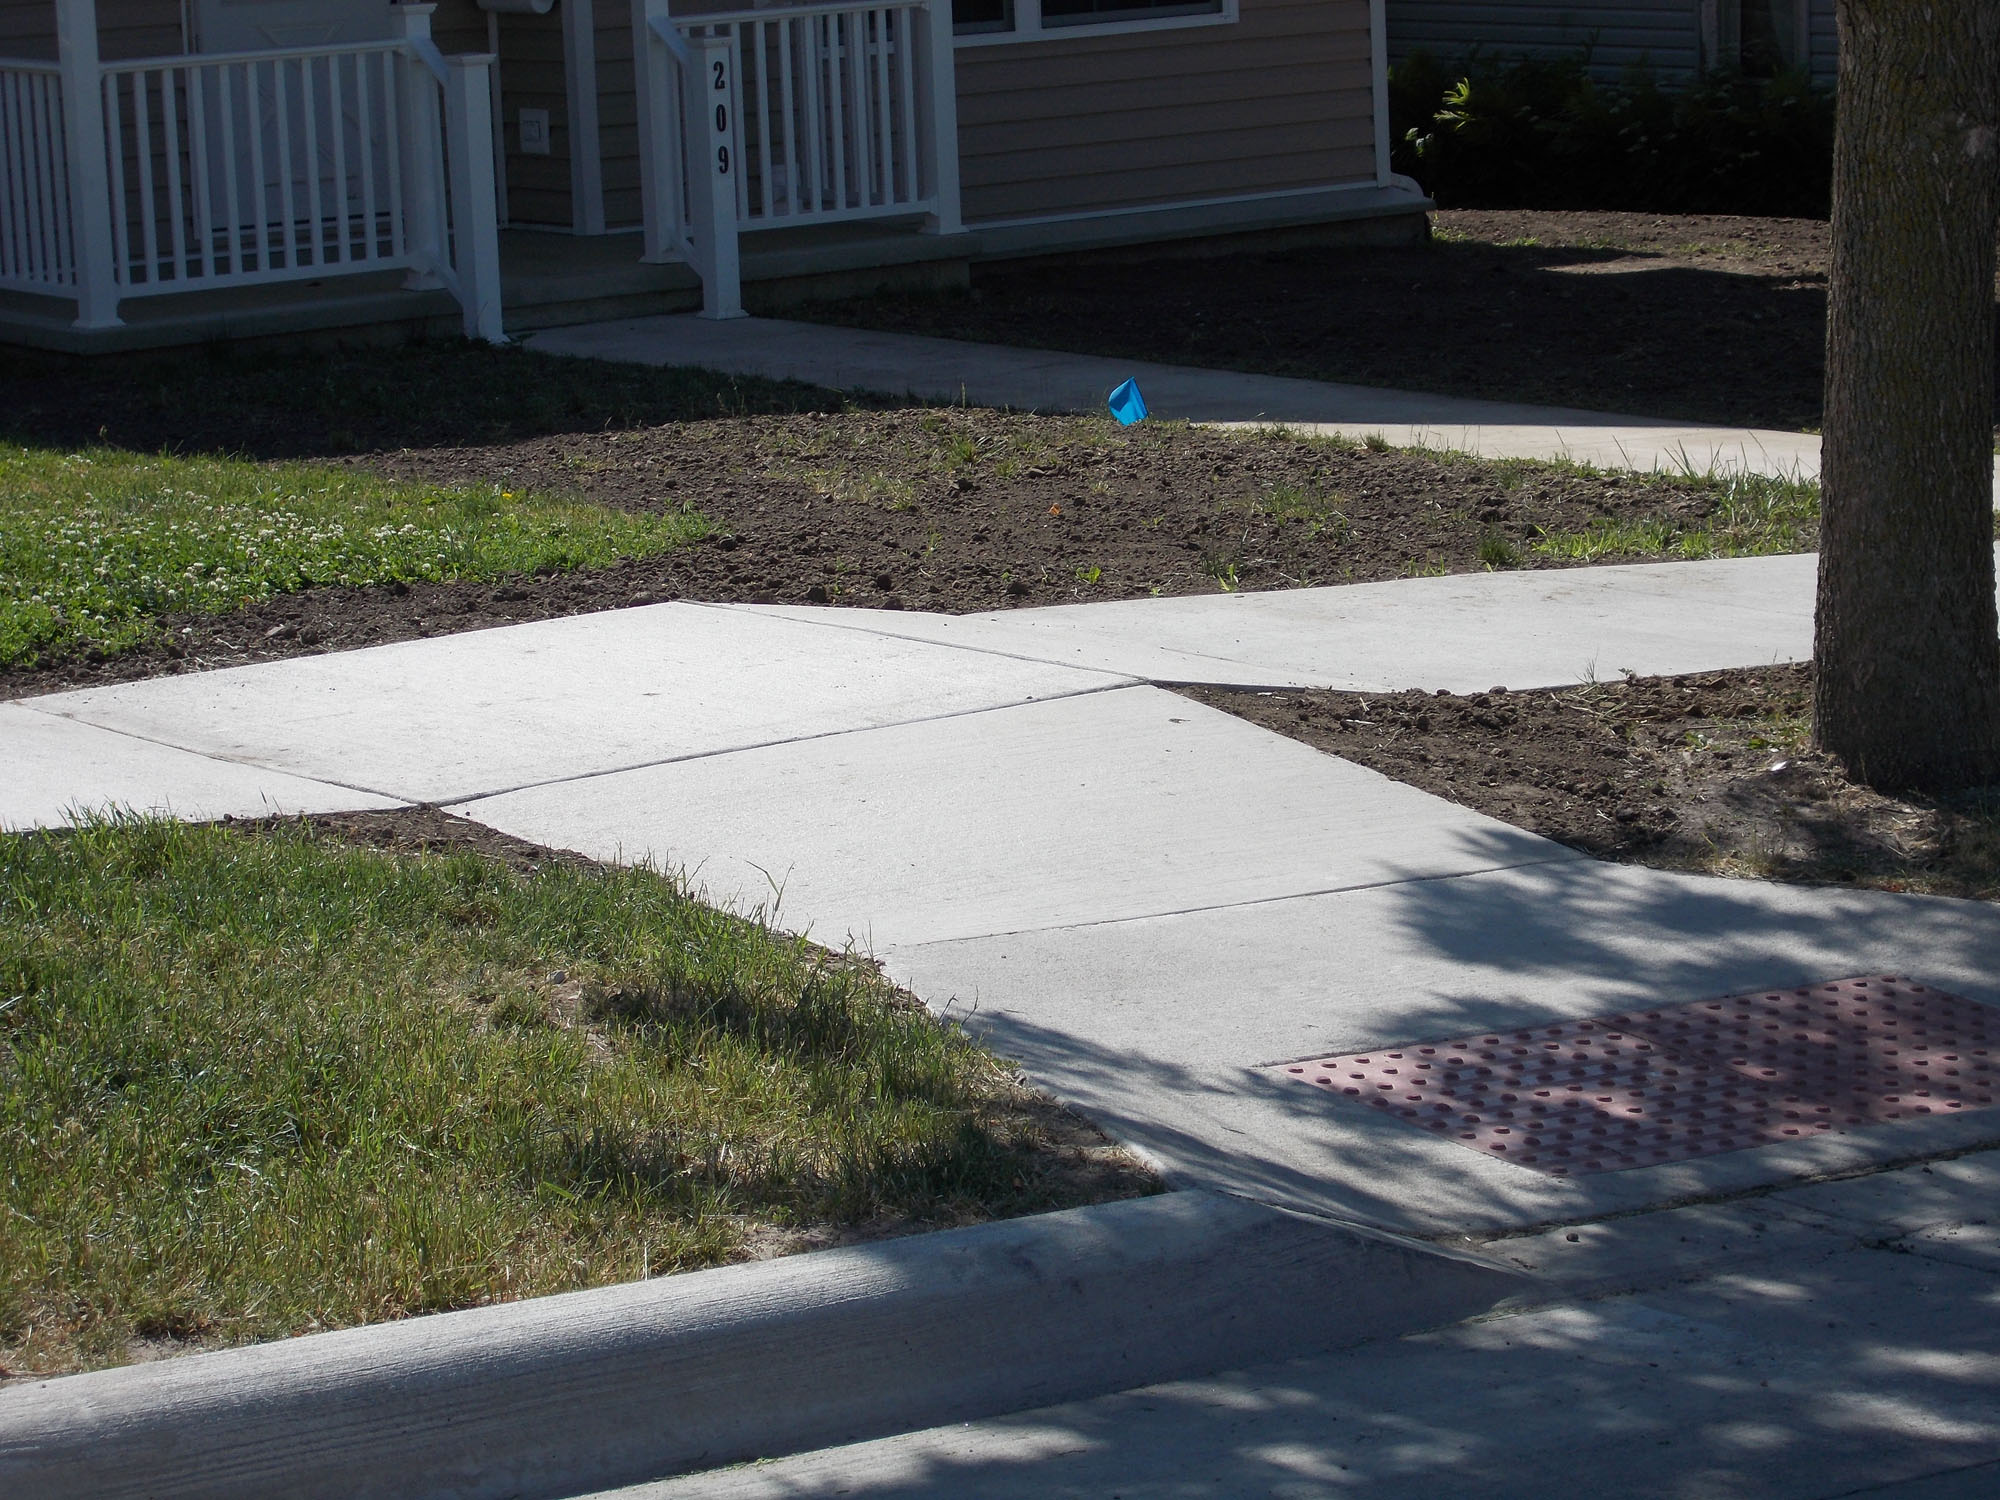 Anamosa_north Ford sidewalk.jpg